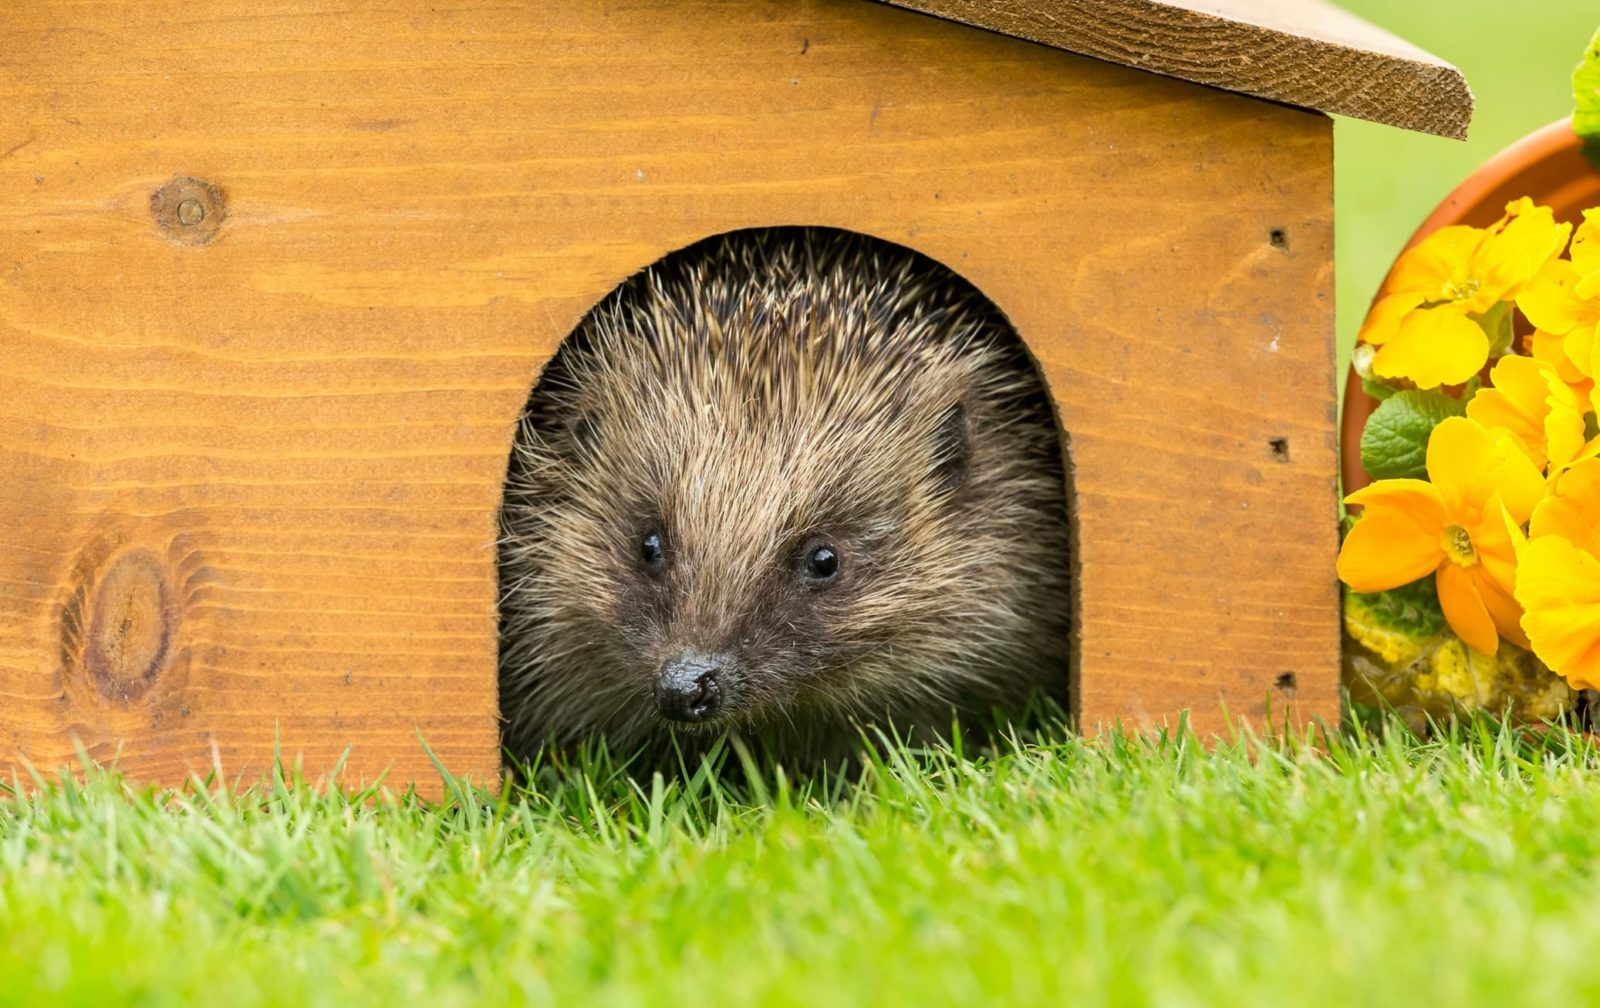 hedgehog poking its head out of its hutch